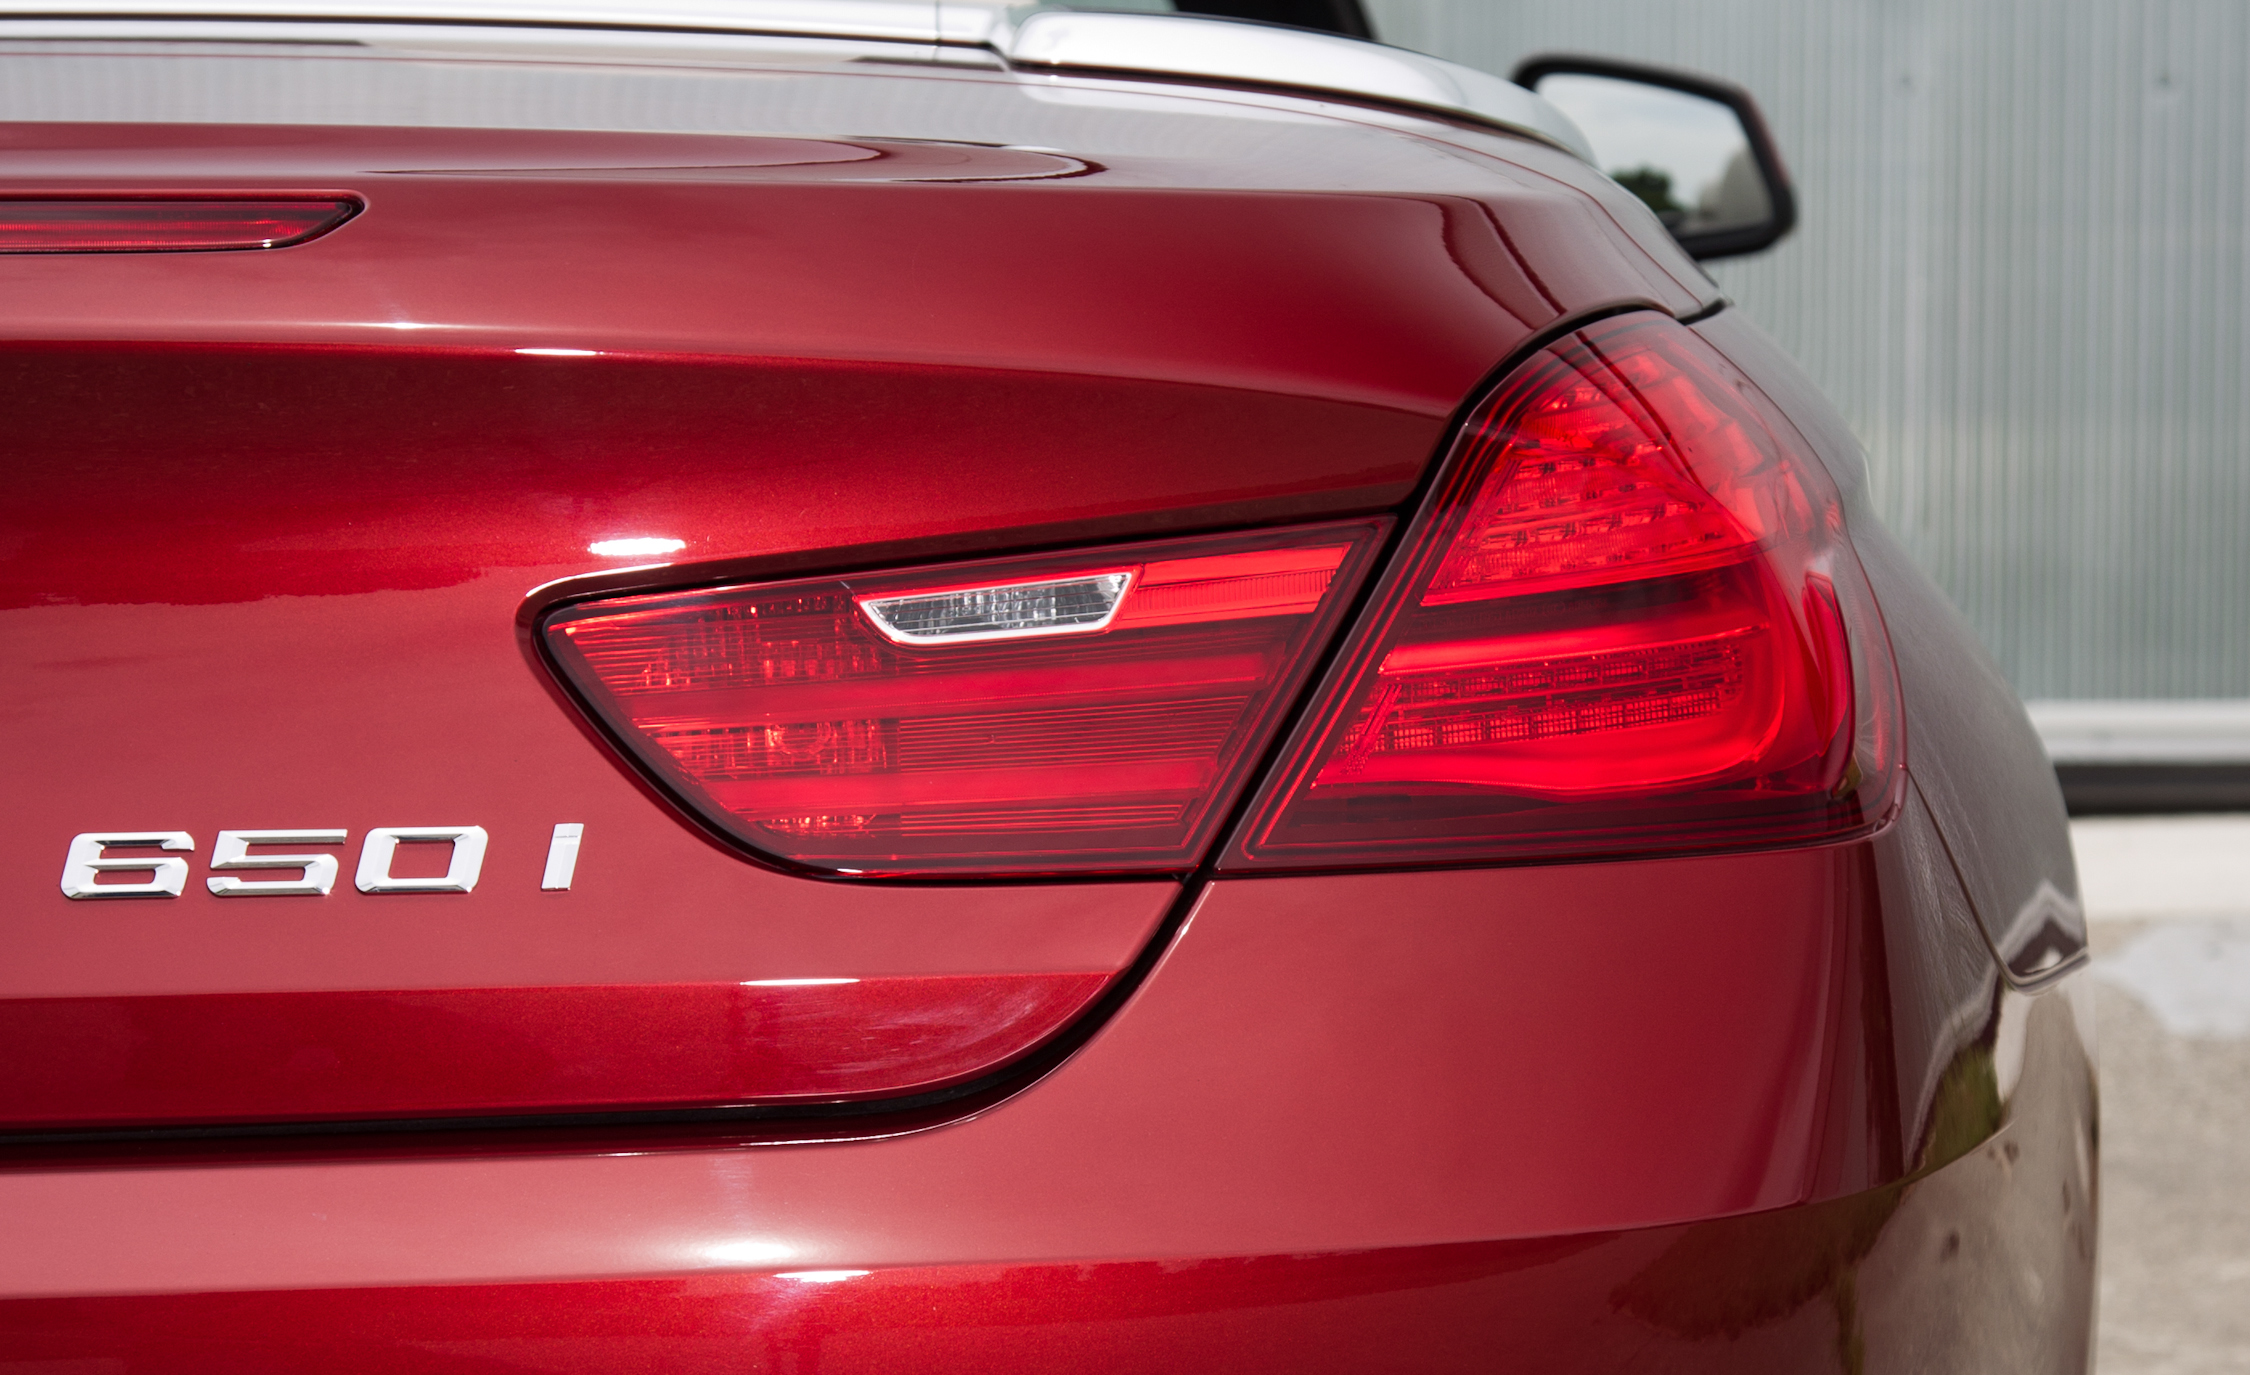 2012 BMW 650i Convertible Exterior View Taillight (Photo 9 of 19)